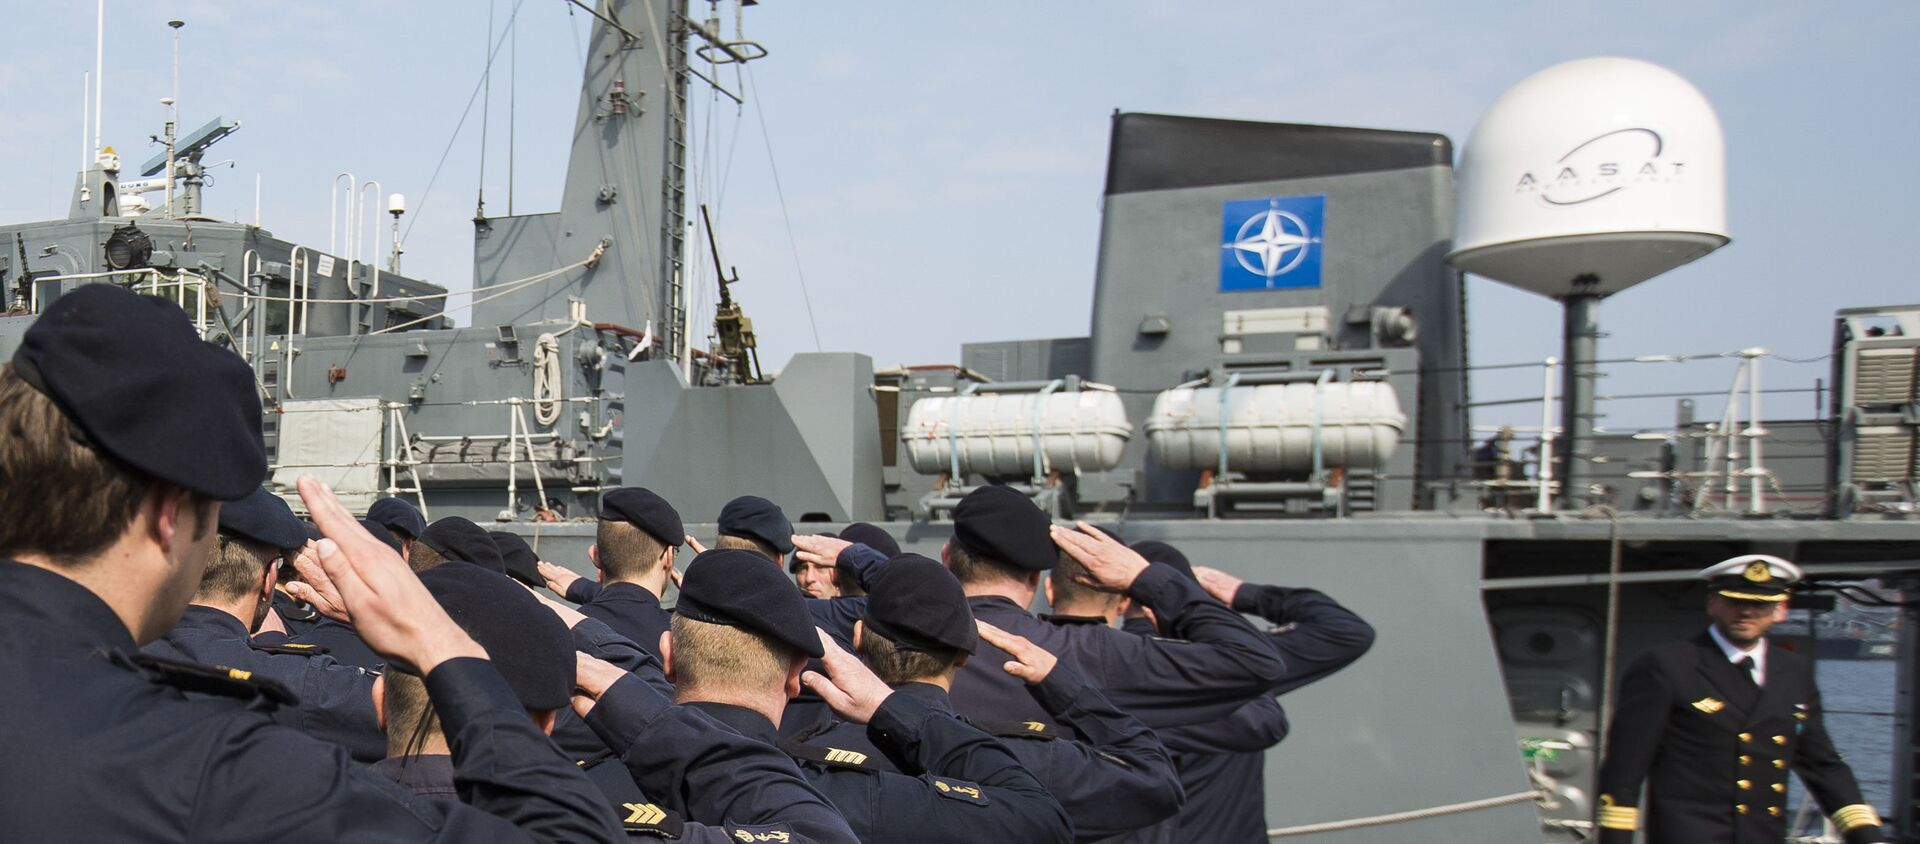 Crew members of Norwegian minesweeper Otra salute after a briefing of NATO Allied Maritime Command Deputy Chief of Staff for Operations, Commodore Arian Minderhoud, right, of the Royal Netherlands Navy before setting sail together in a convoy of five ships of Norway, Belgium, the Netherlands and Estonia from Kiel, Germany, Tuesday, April 22, 2014 - Sputnik International, 1920, 14.06.2021